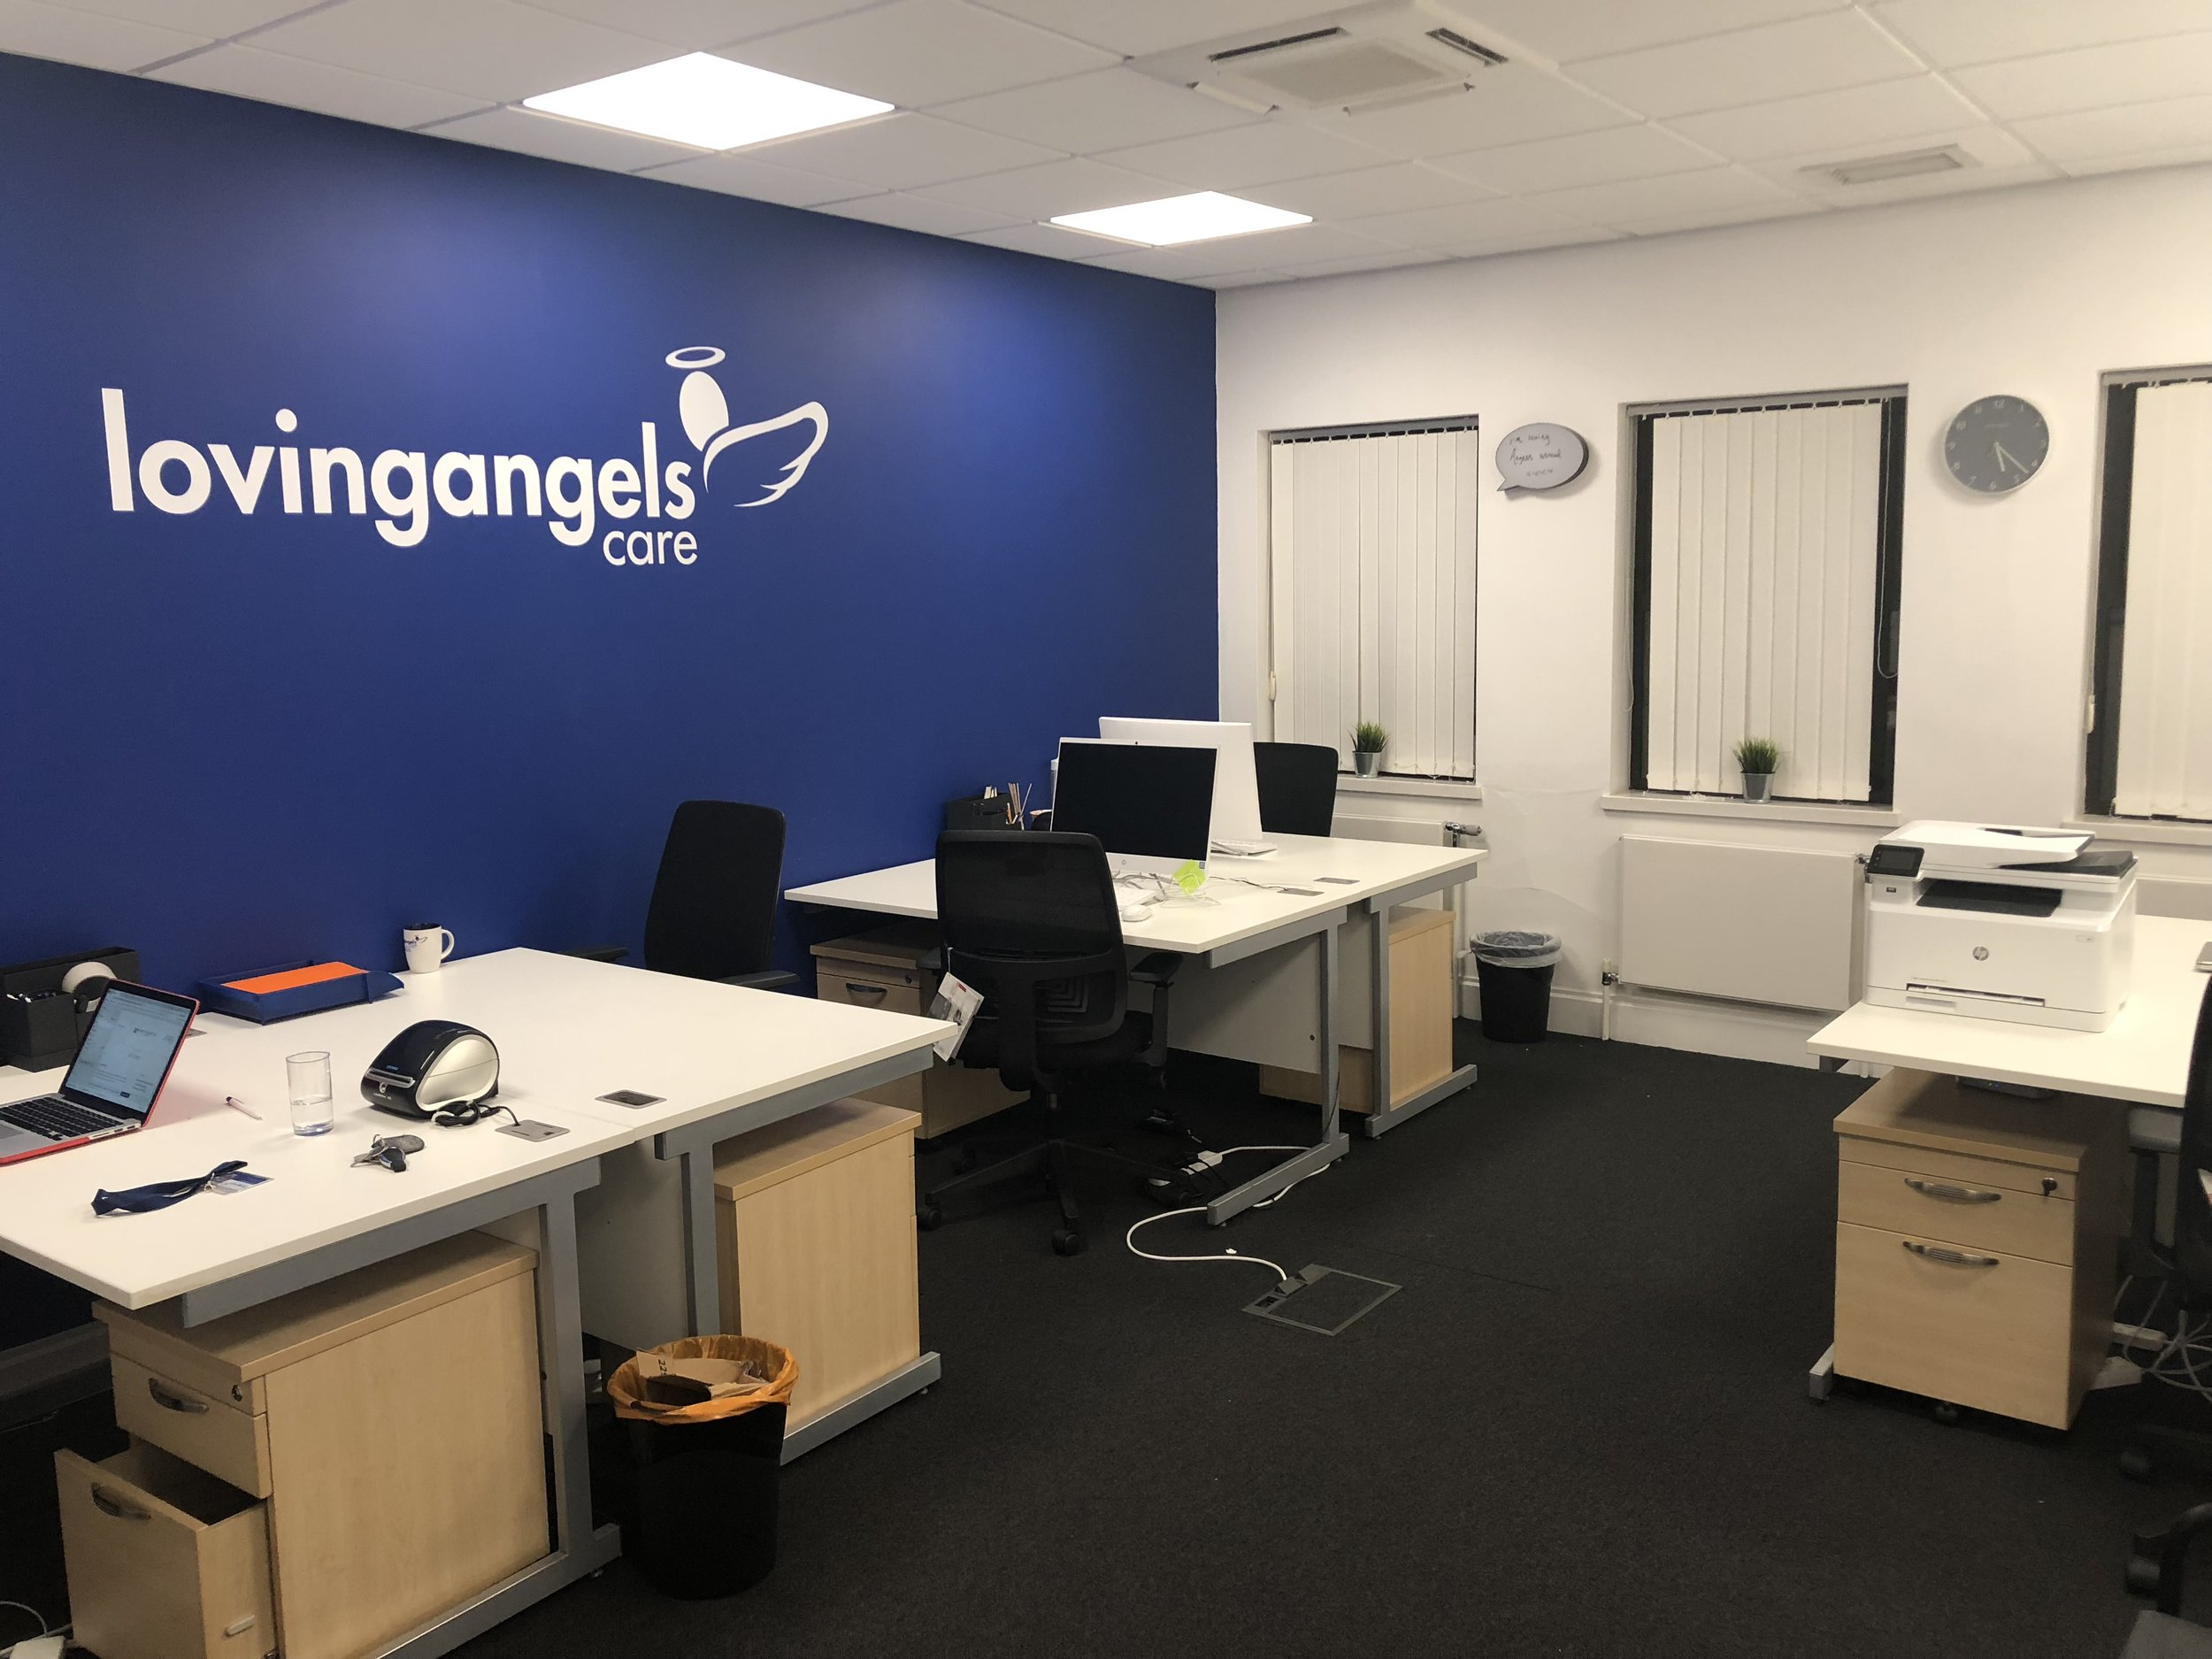 Our current office at Flexspace offices in Moulton Park Northampton. Thank you to the team at MG Signs for the signage.